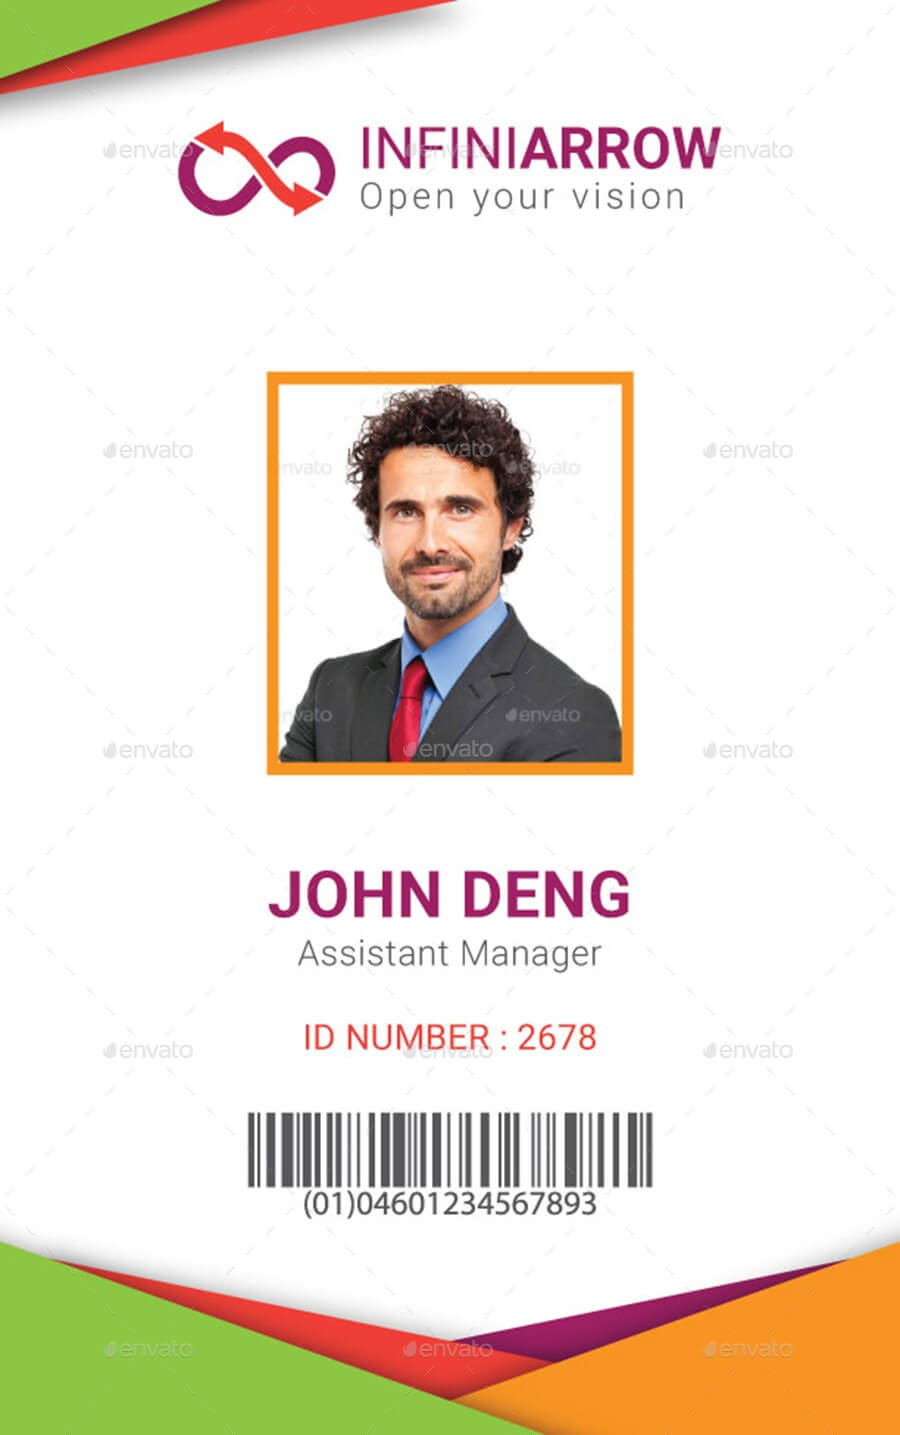 Multipurpose Business Id Card Templatedotnpix | Graphicriver Intended For Sample Of Id Card Template